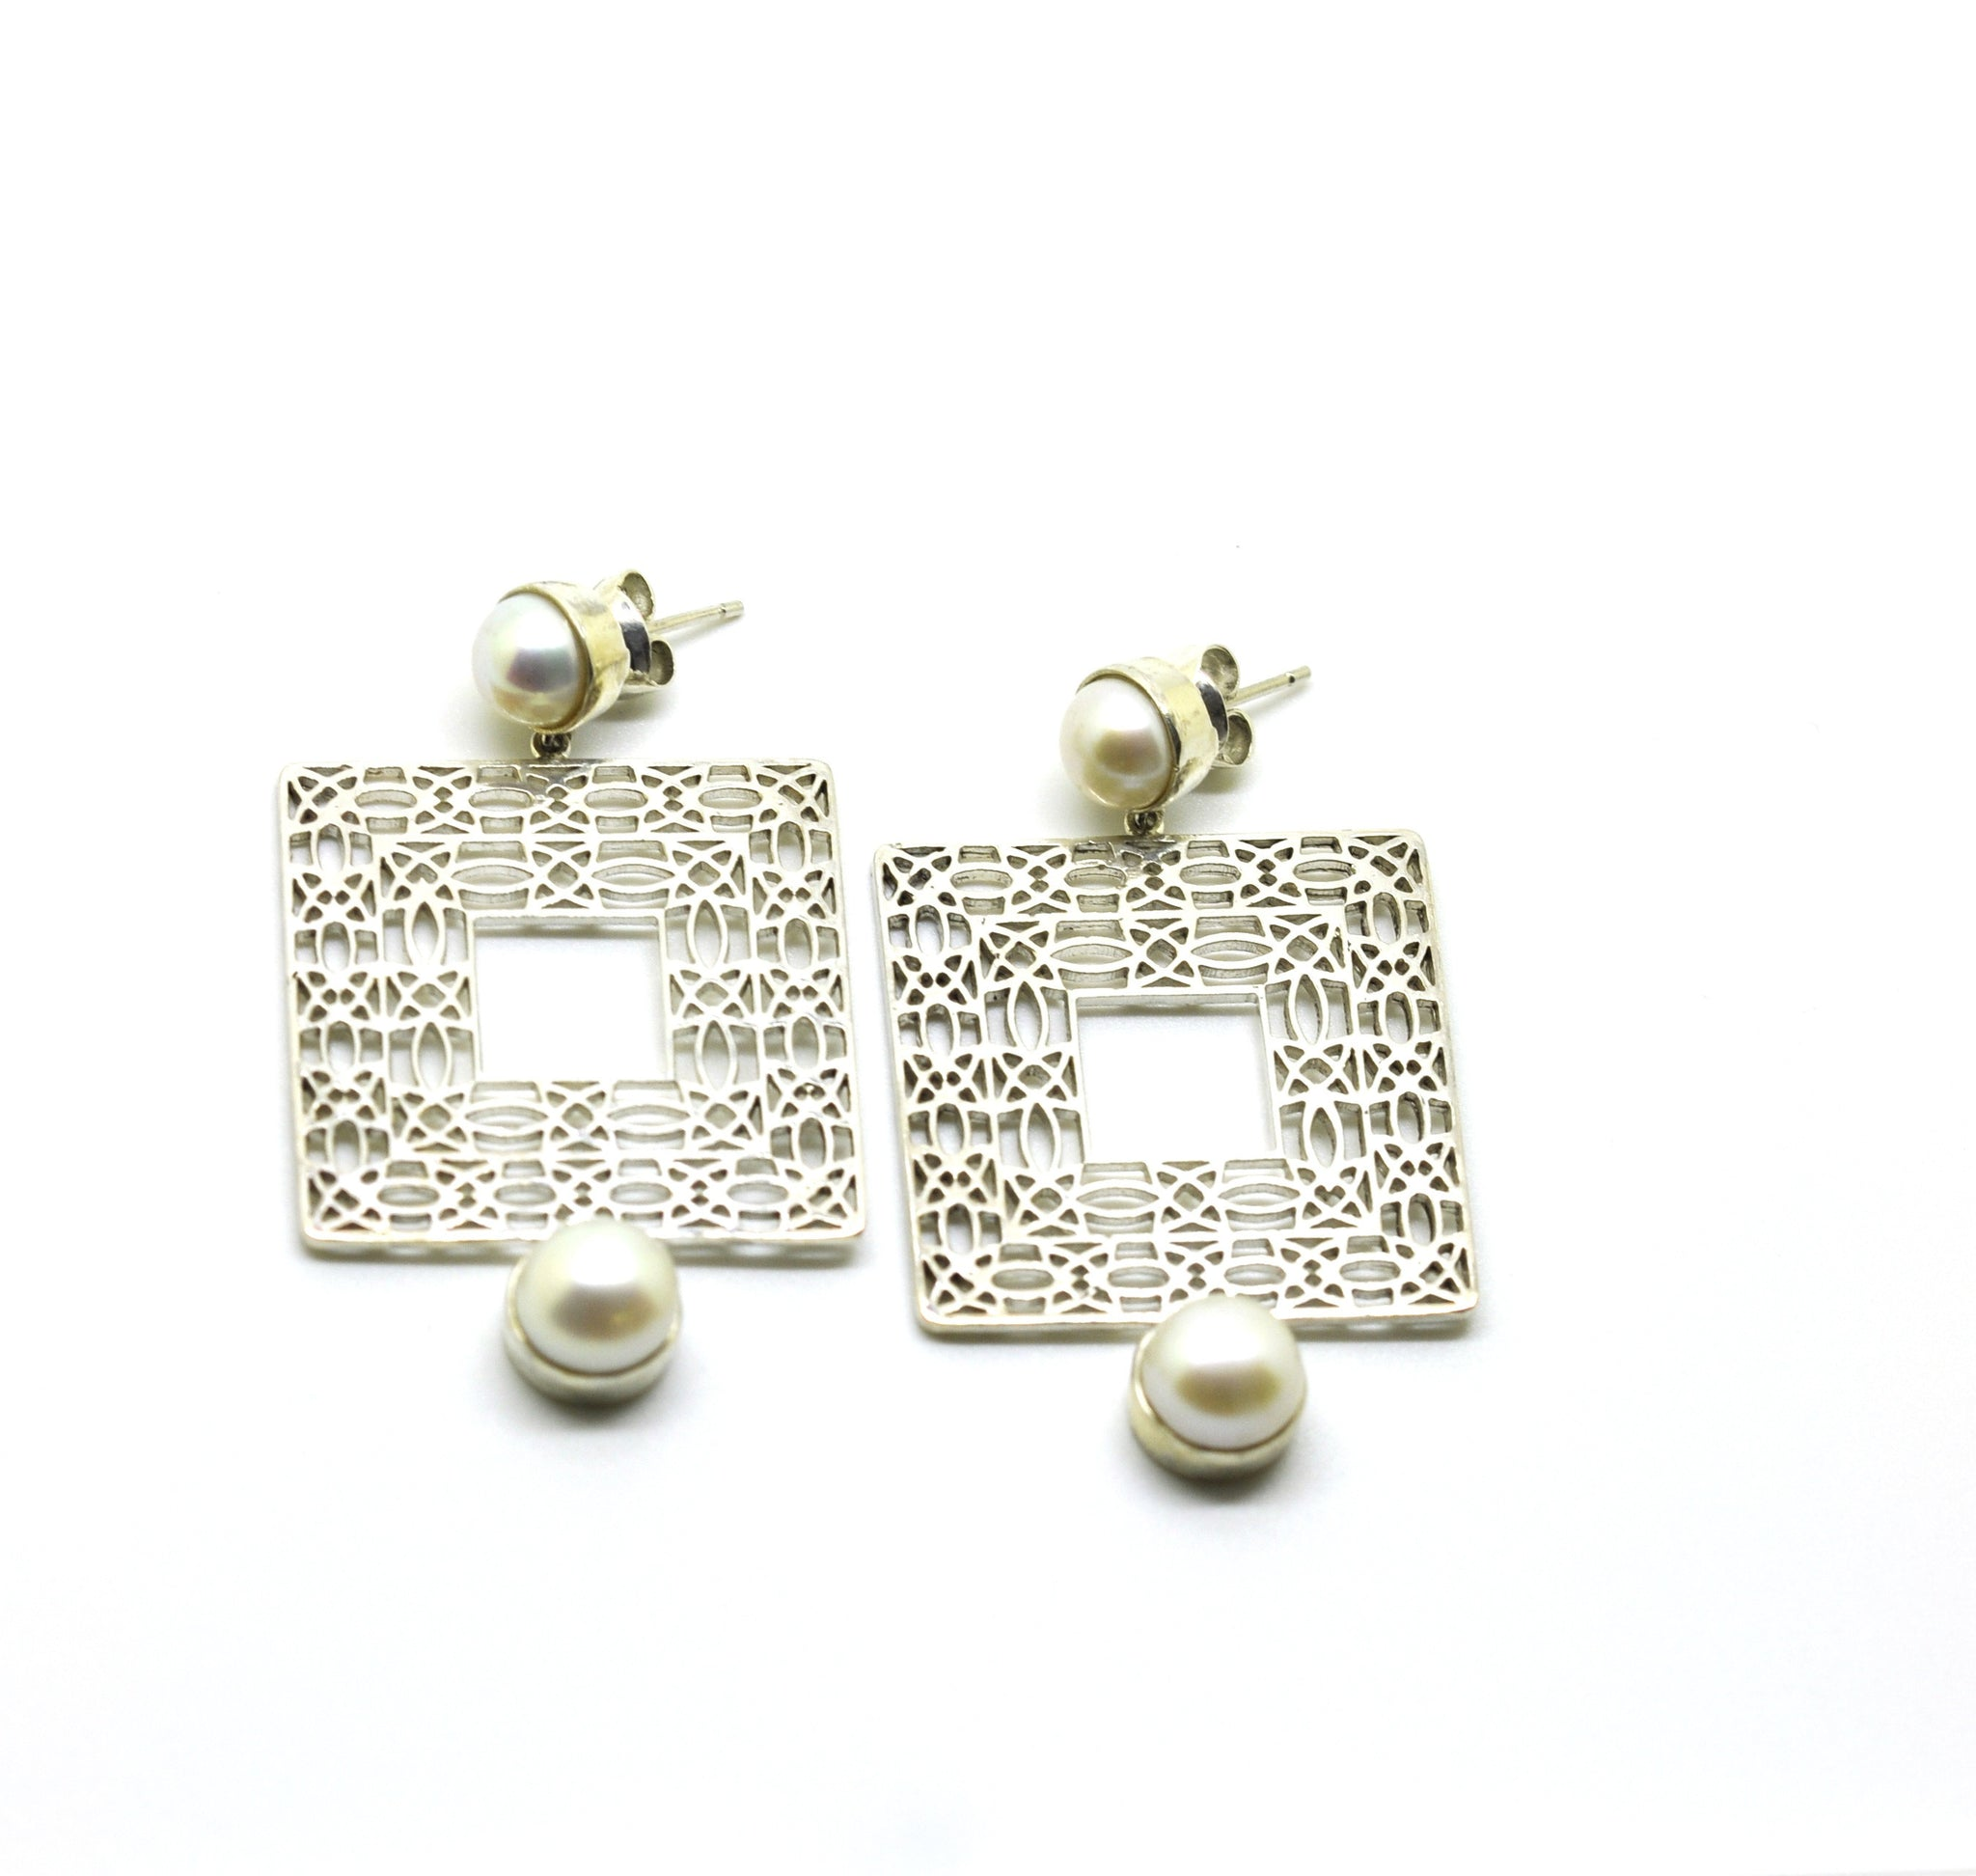 ON SALE Filigree - Square with pearls (clearance)